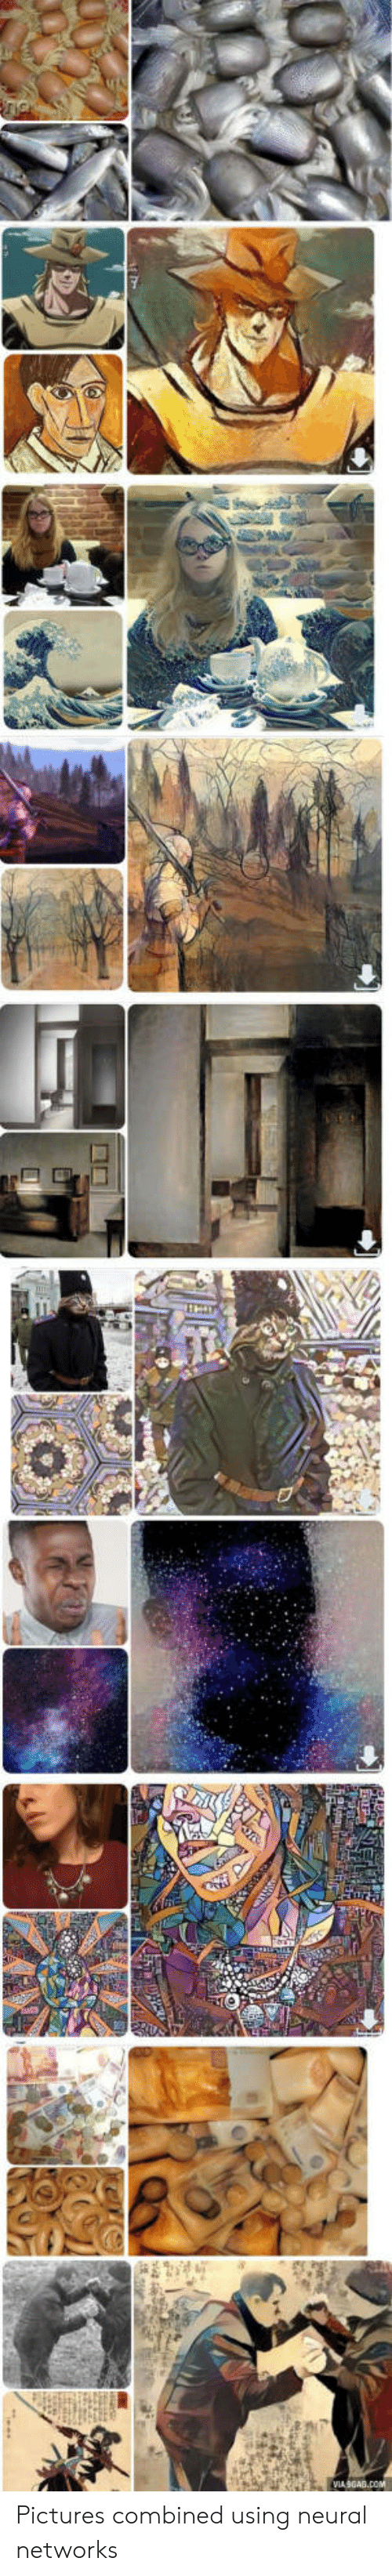 neural networks: VIA SGAB.COM Pictures combined using neural networks